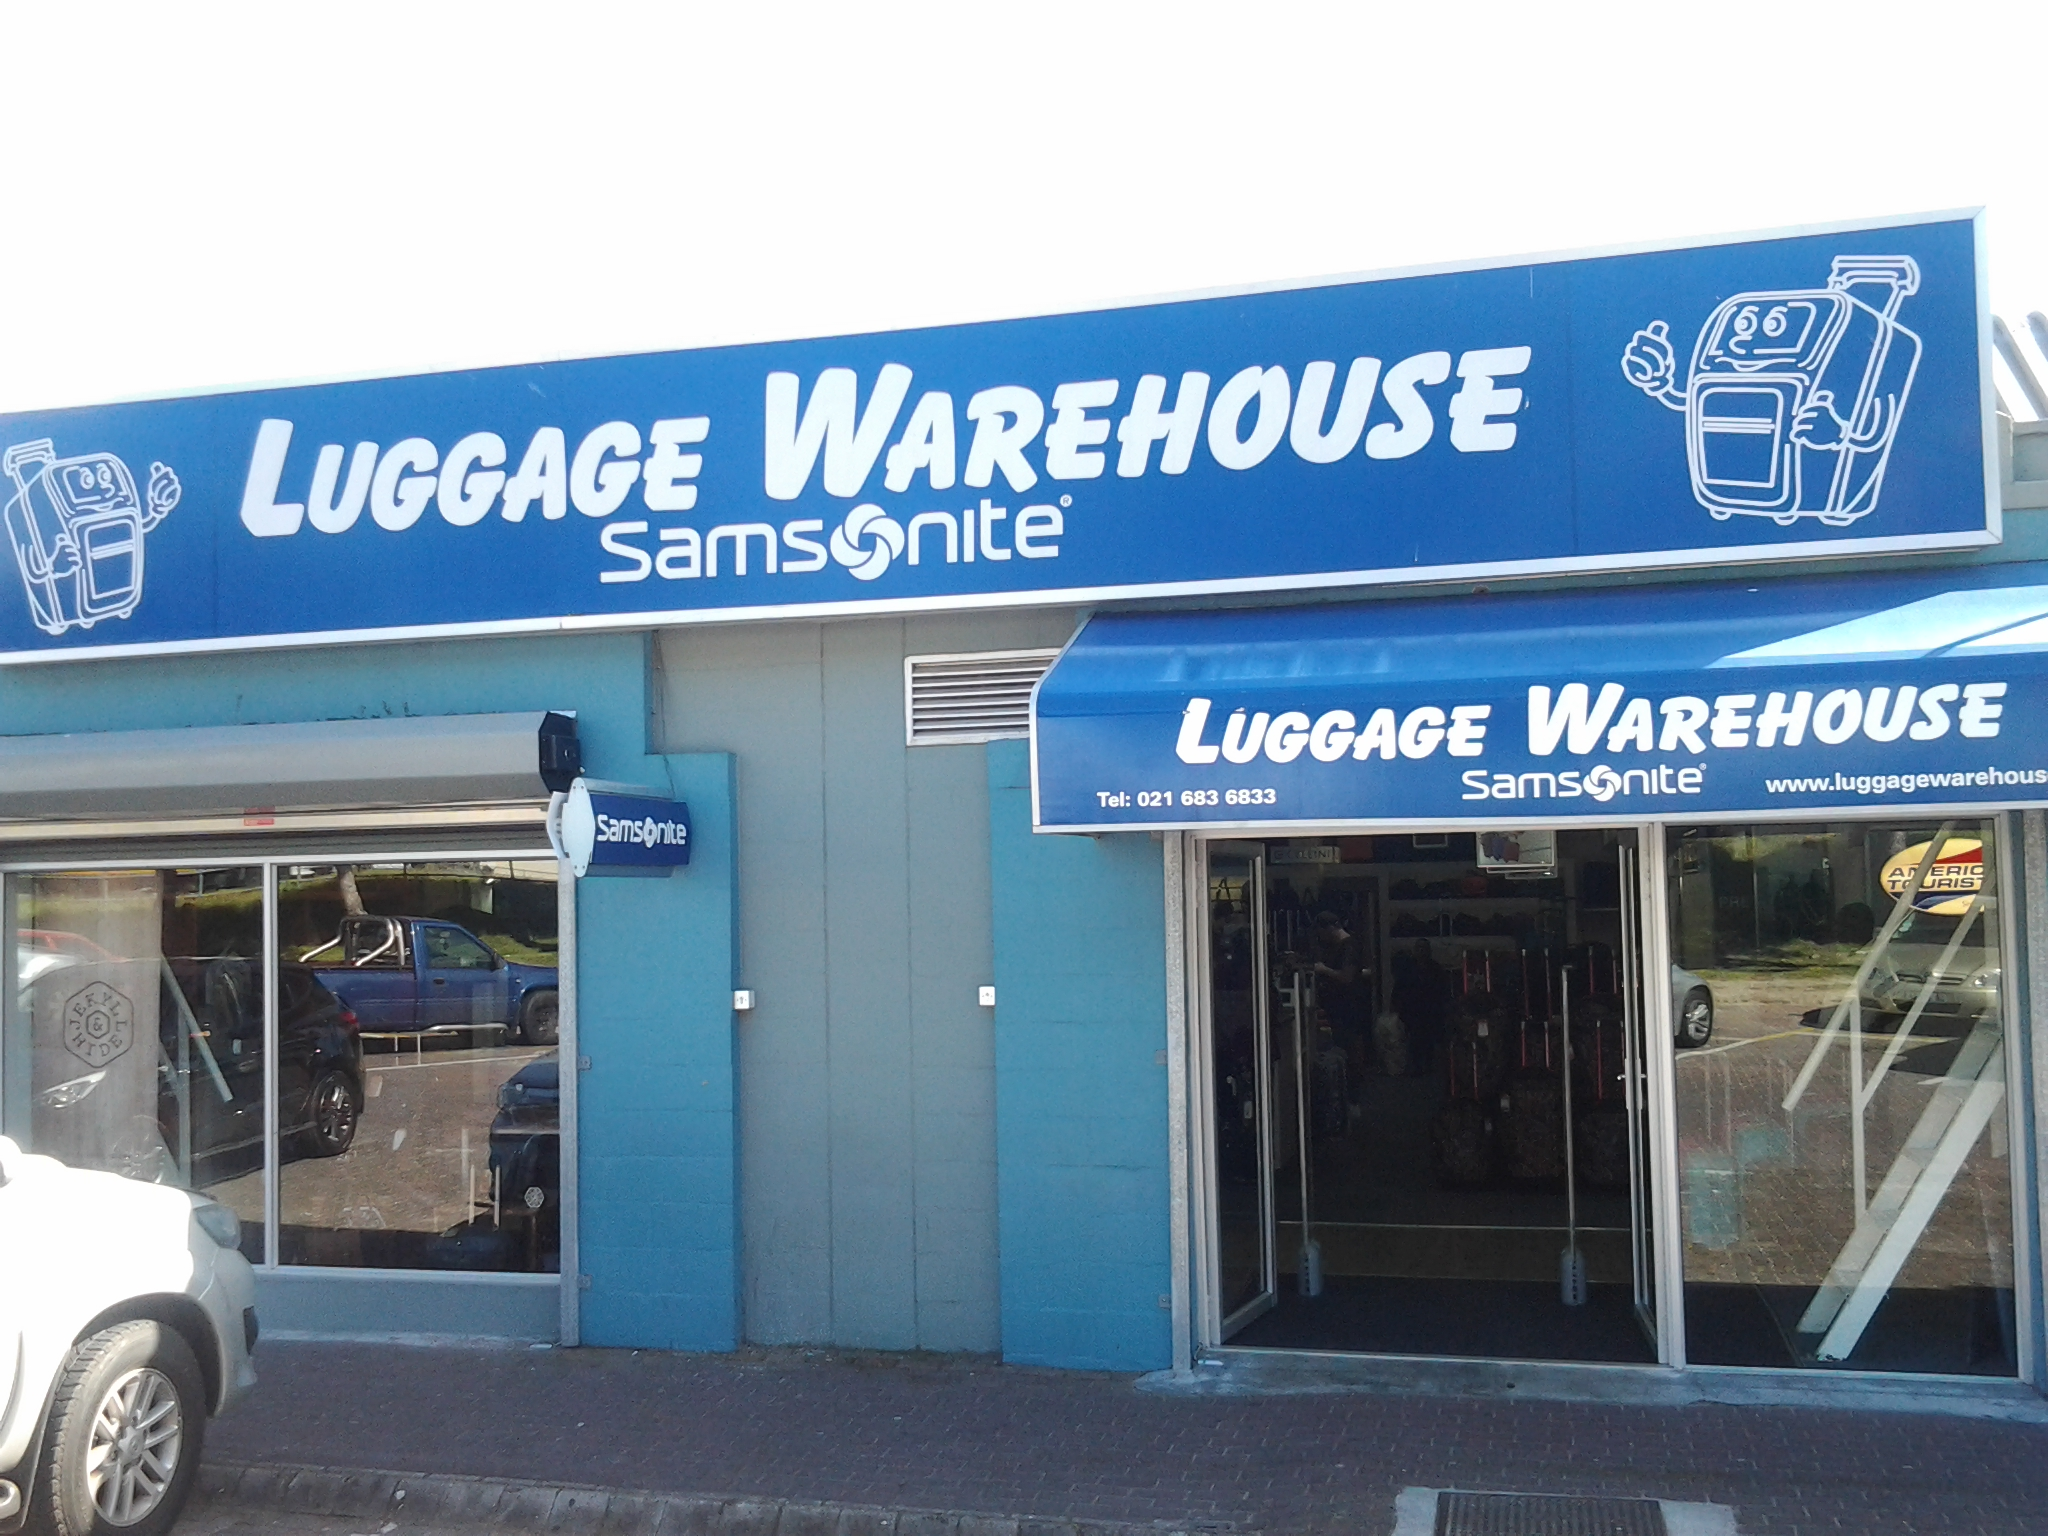 The Luggage Warehouse | Luggage And Suitcases